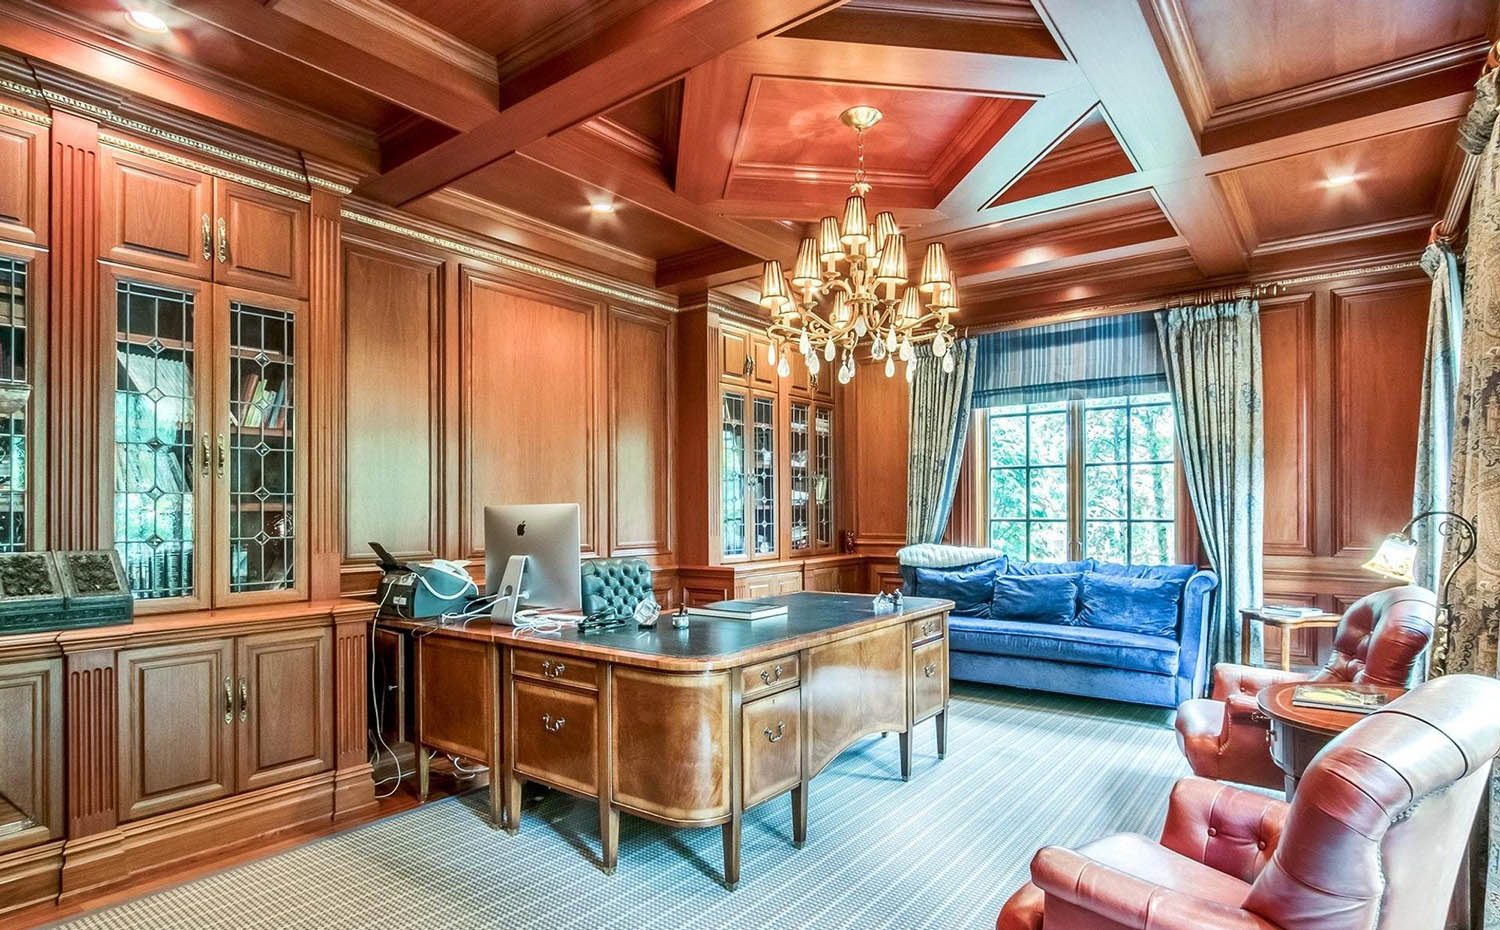 Home office with wood wall paneling and beautiful all wood coffered ceiling with center diamond design.